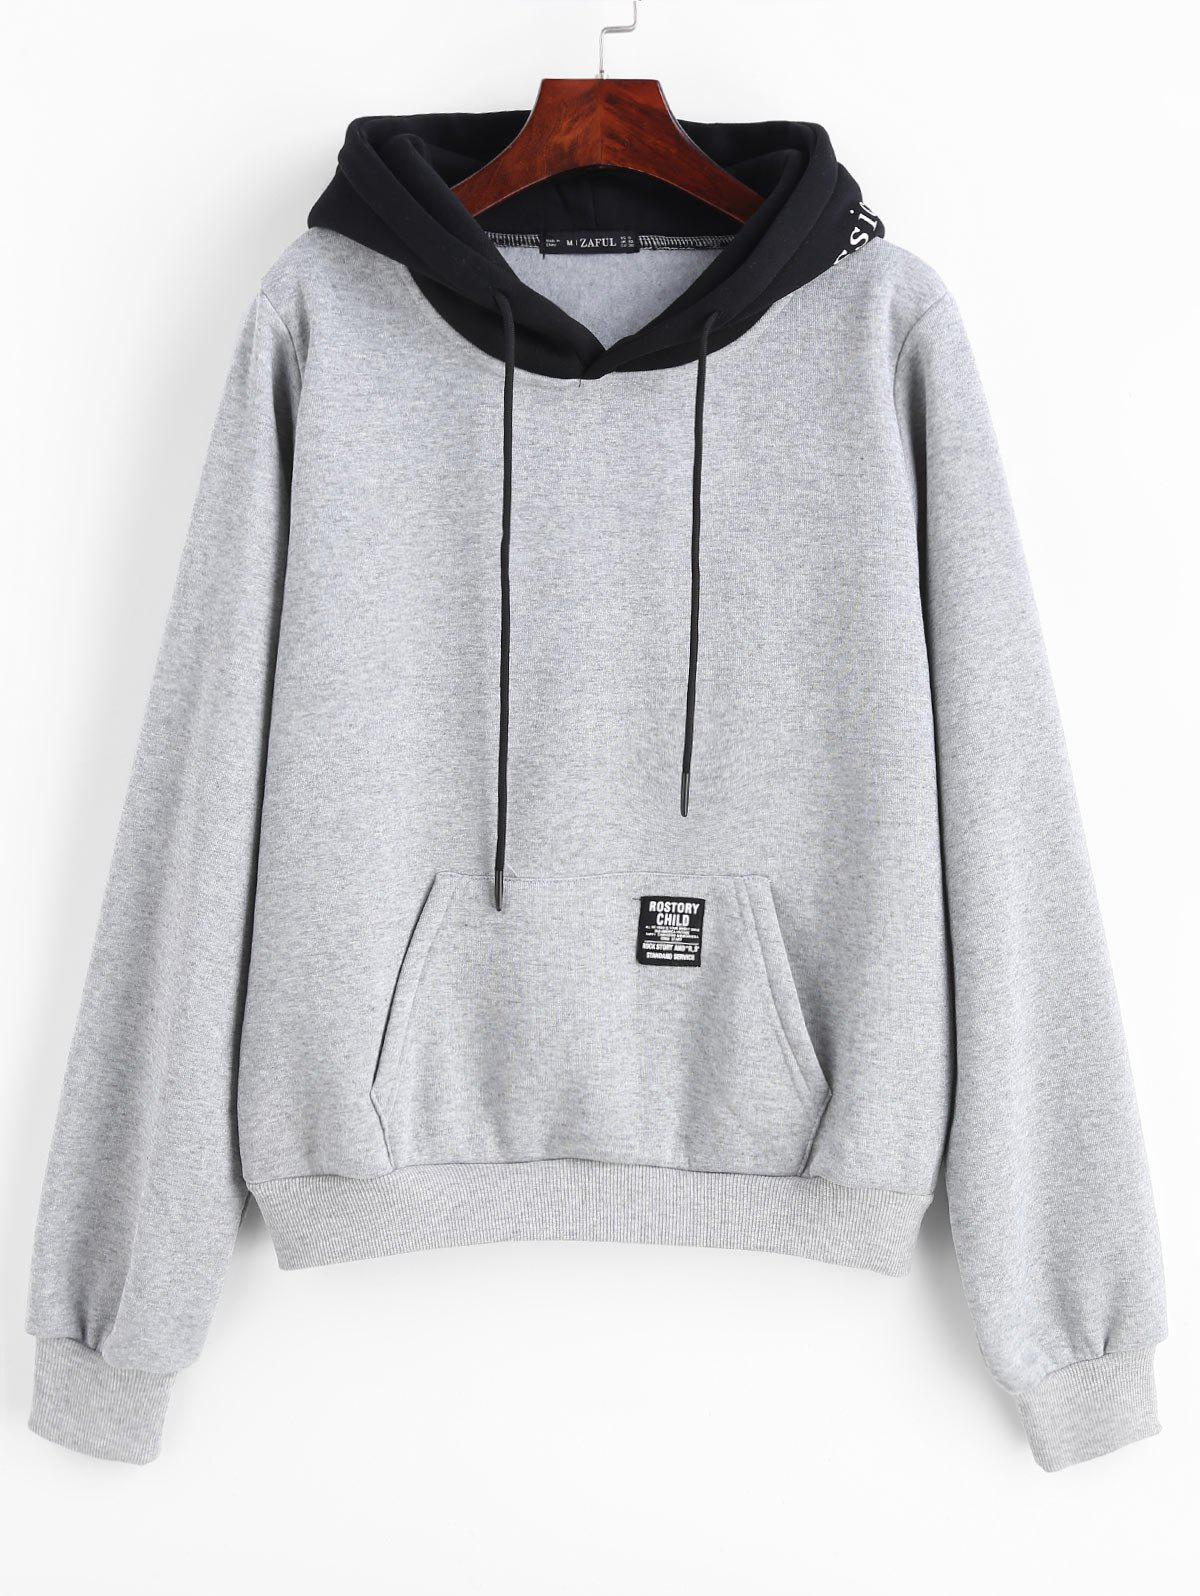 ZAFUL Pouch Pocket Fleece Pullover Hoodie, Light gray